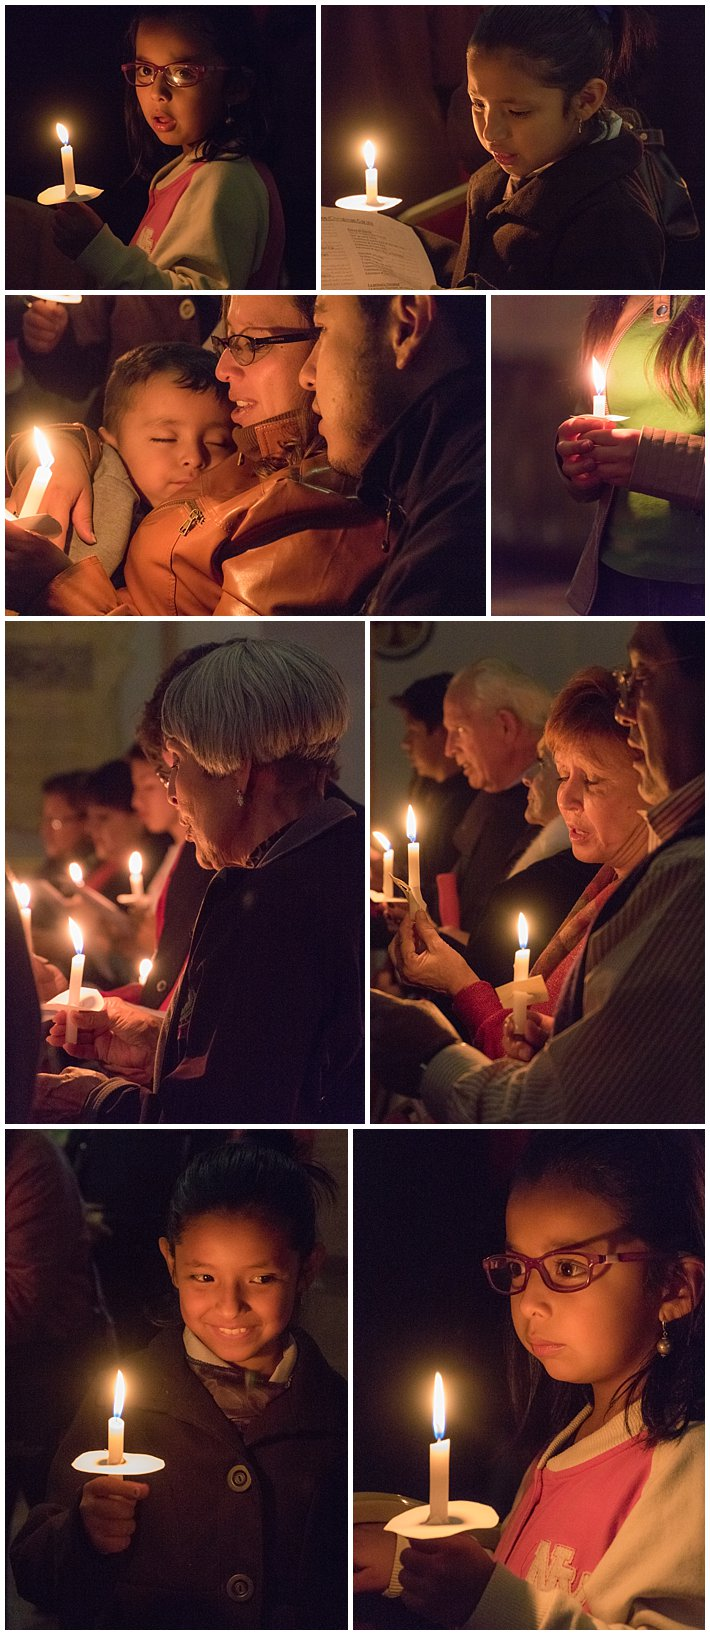 Christmas Chorale Candles in Cuenca, Ecuador Dec 21, 2016